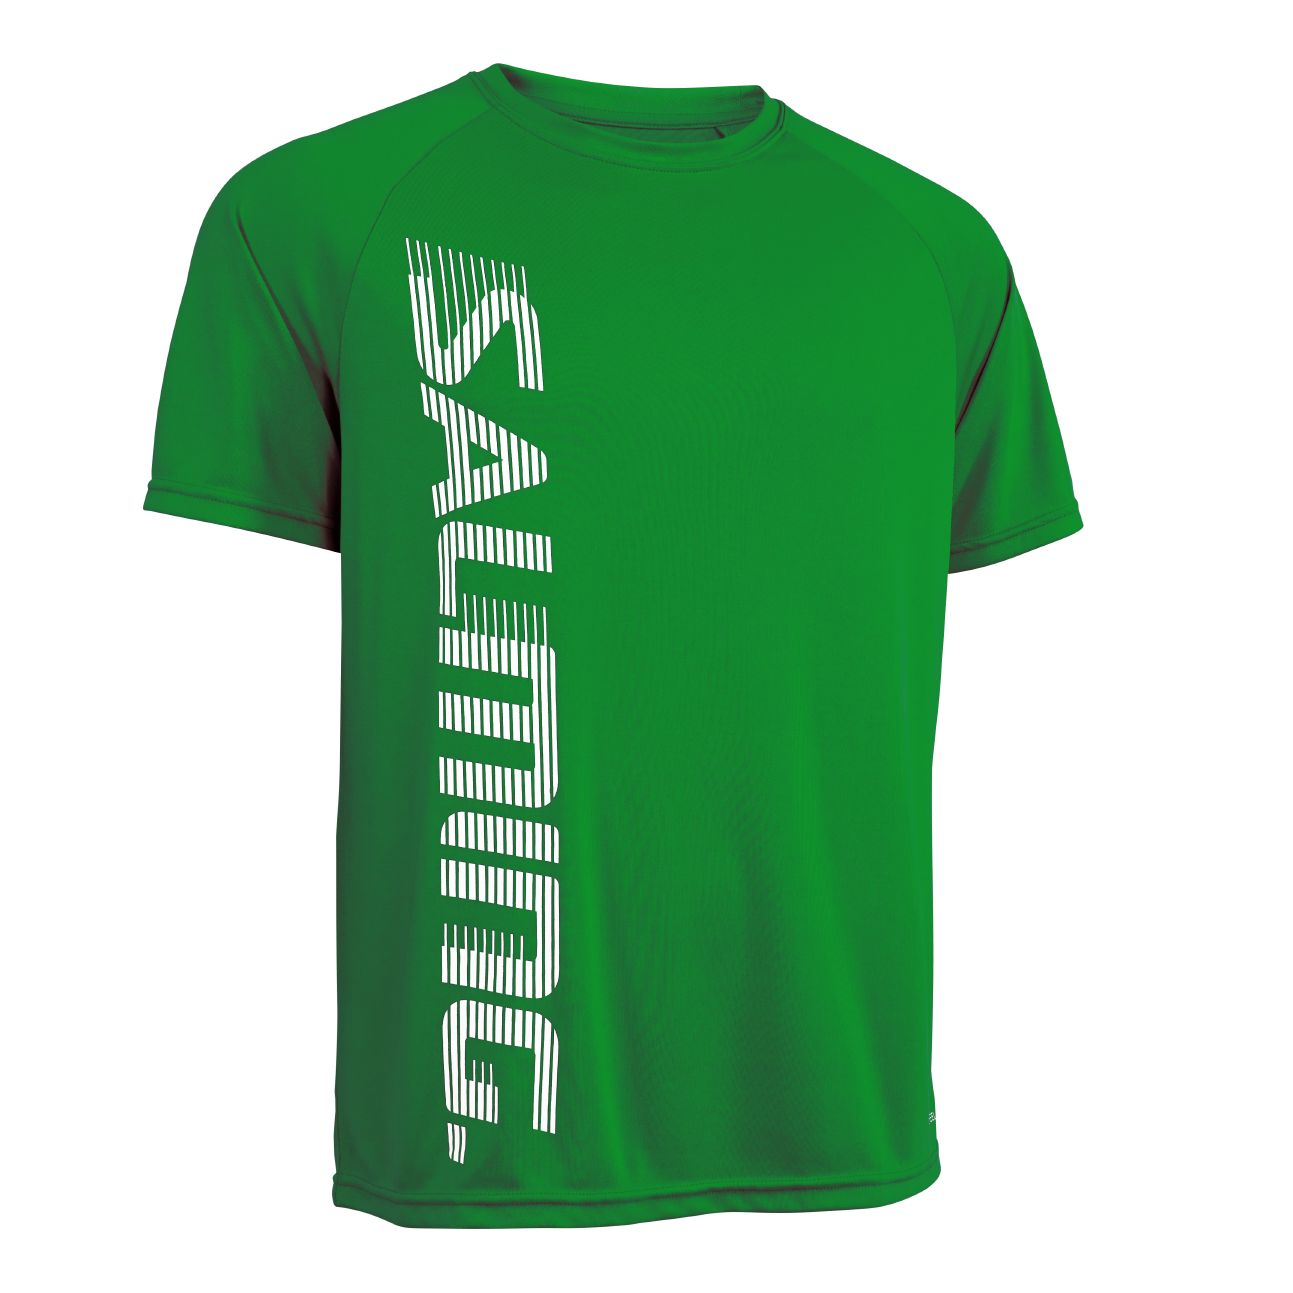 Salming Training Tee 2.0 Zelená, XL